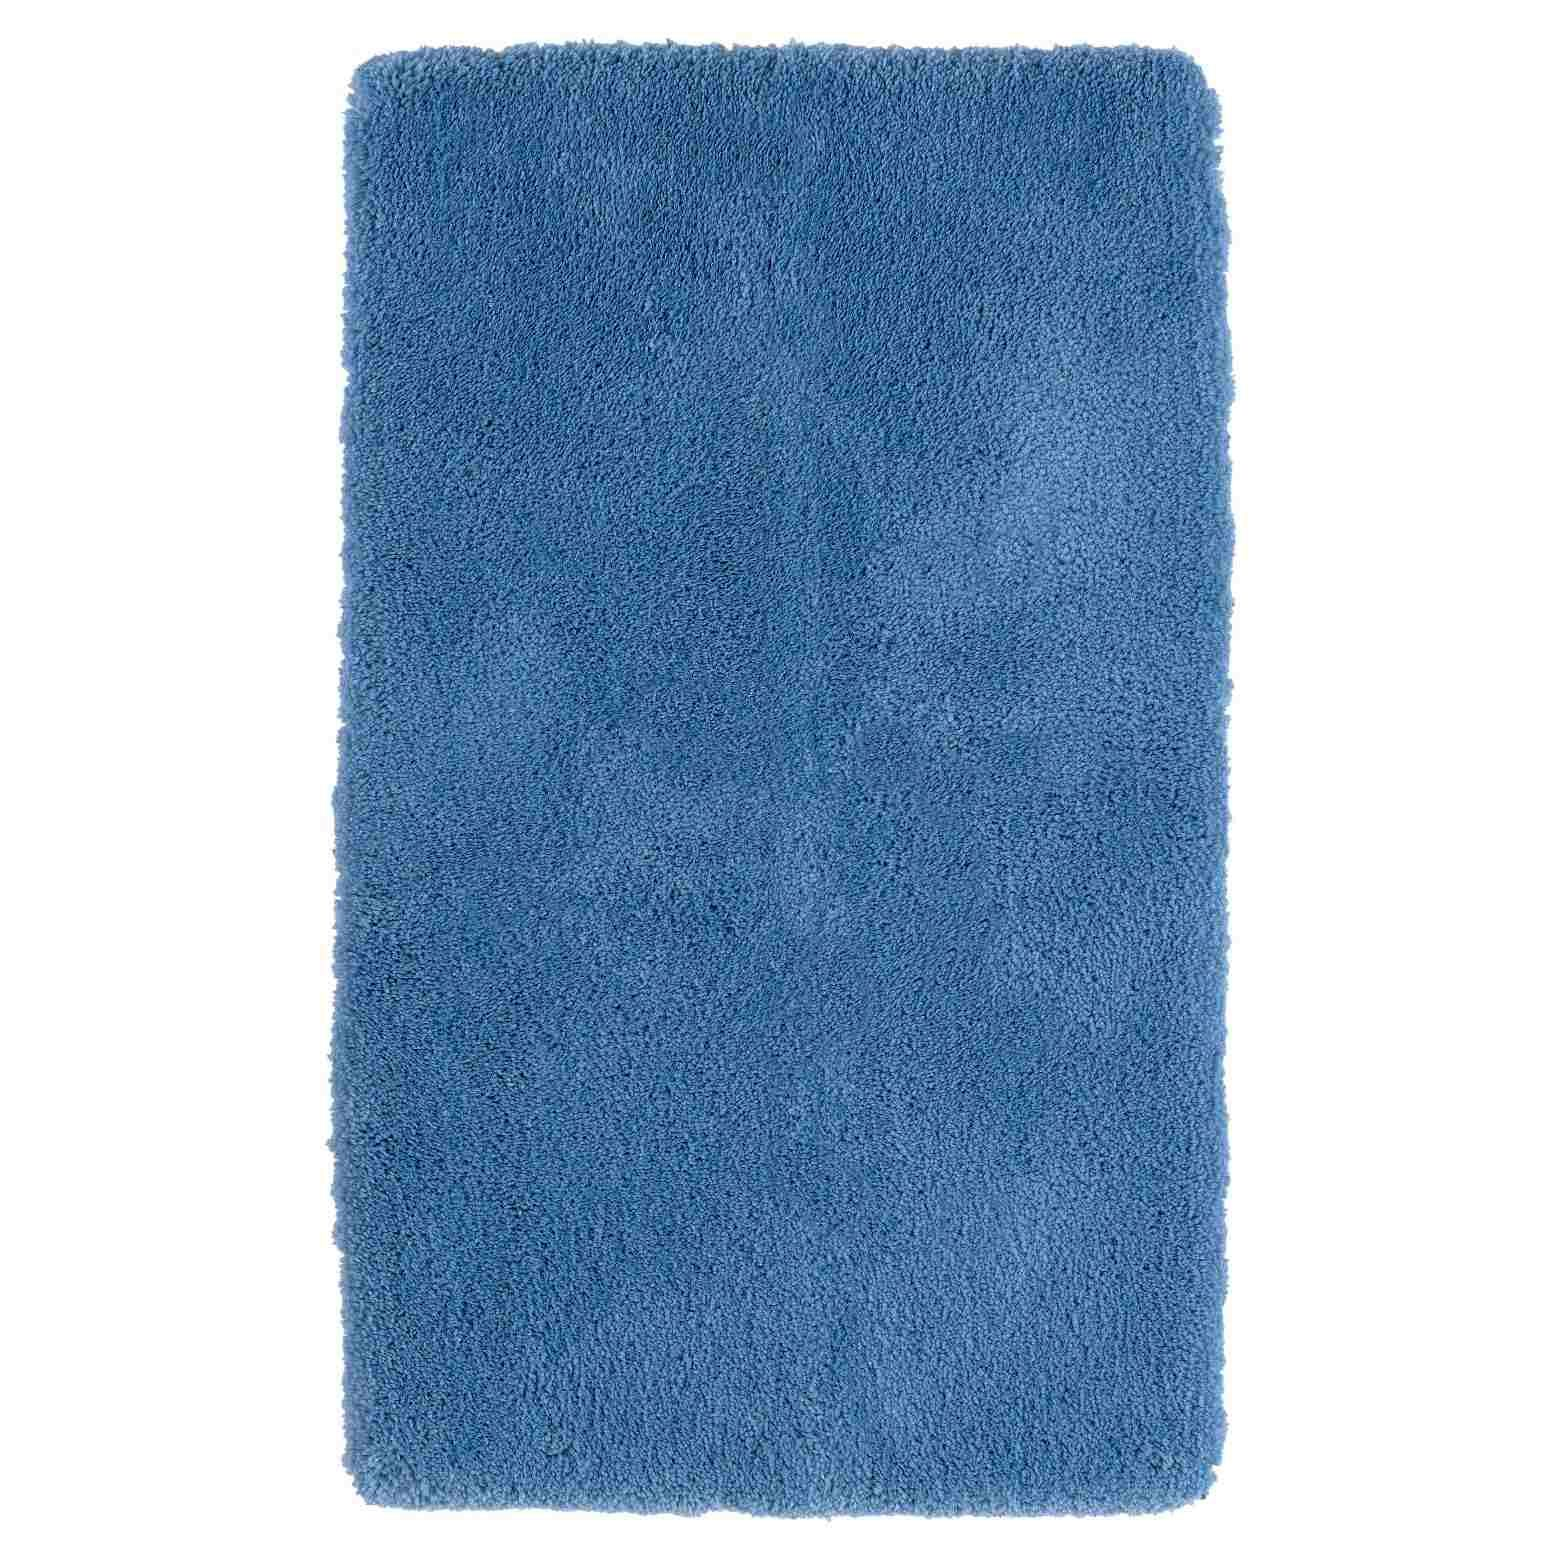 The 8 Best Bath Mats Of 2020 With Images Marble Bathroom